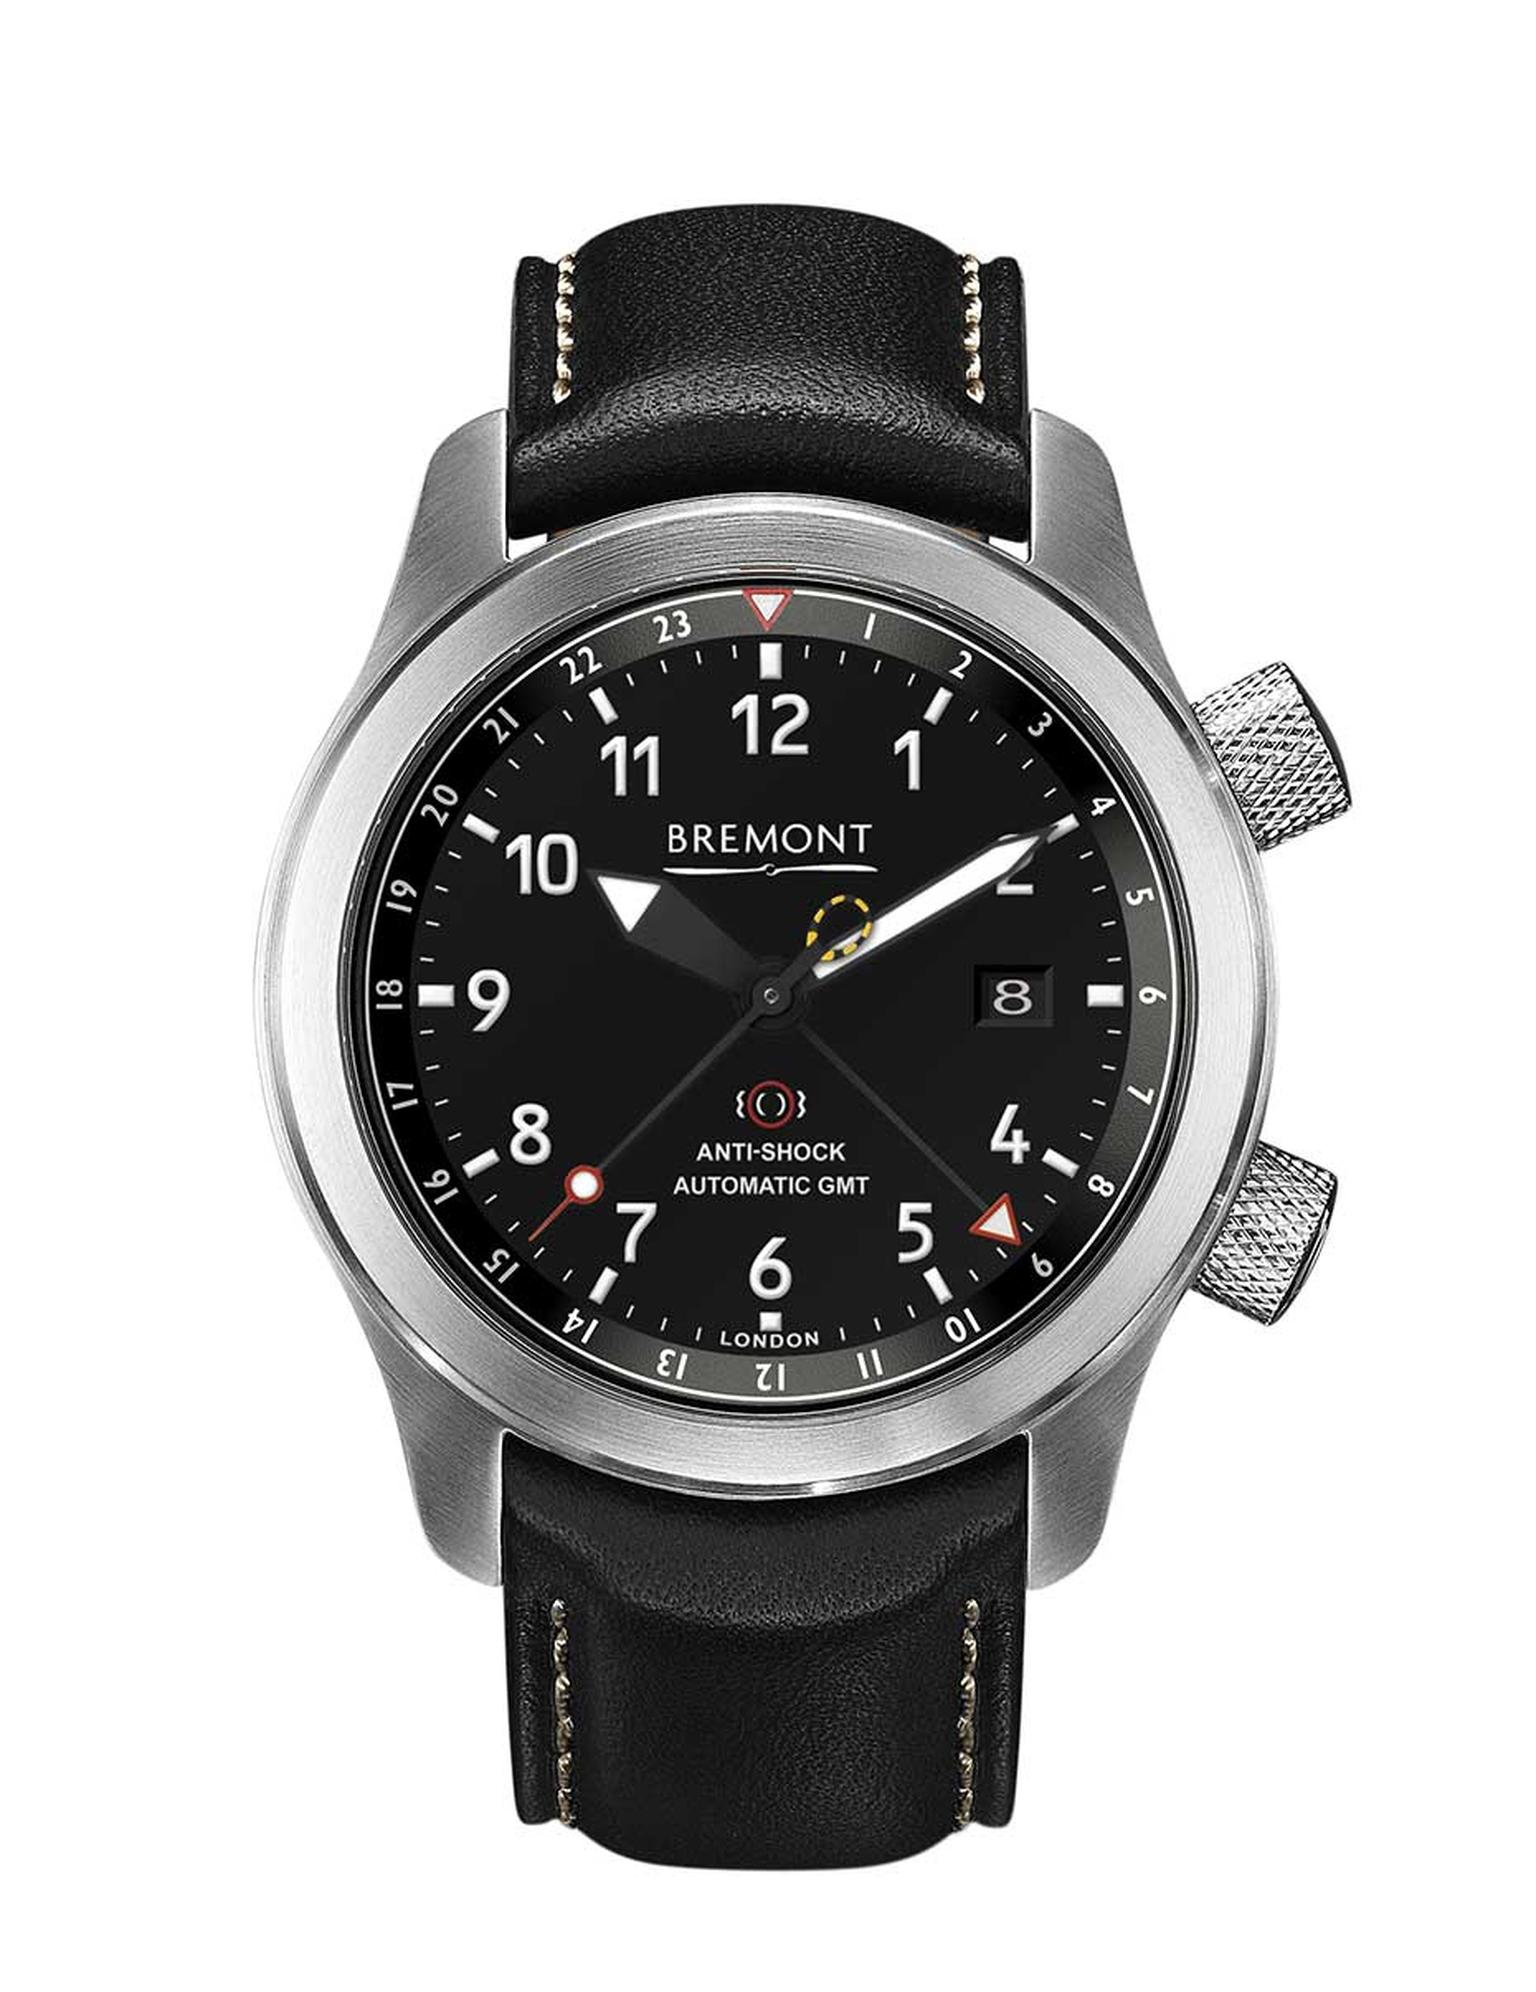 The new Bremont MBIII pilot's watch is a successor to the British watchmaker's MBs I and II with the addition of a GMT function